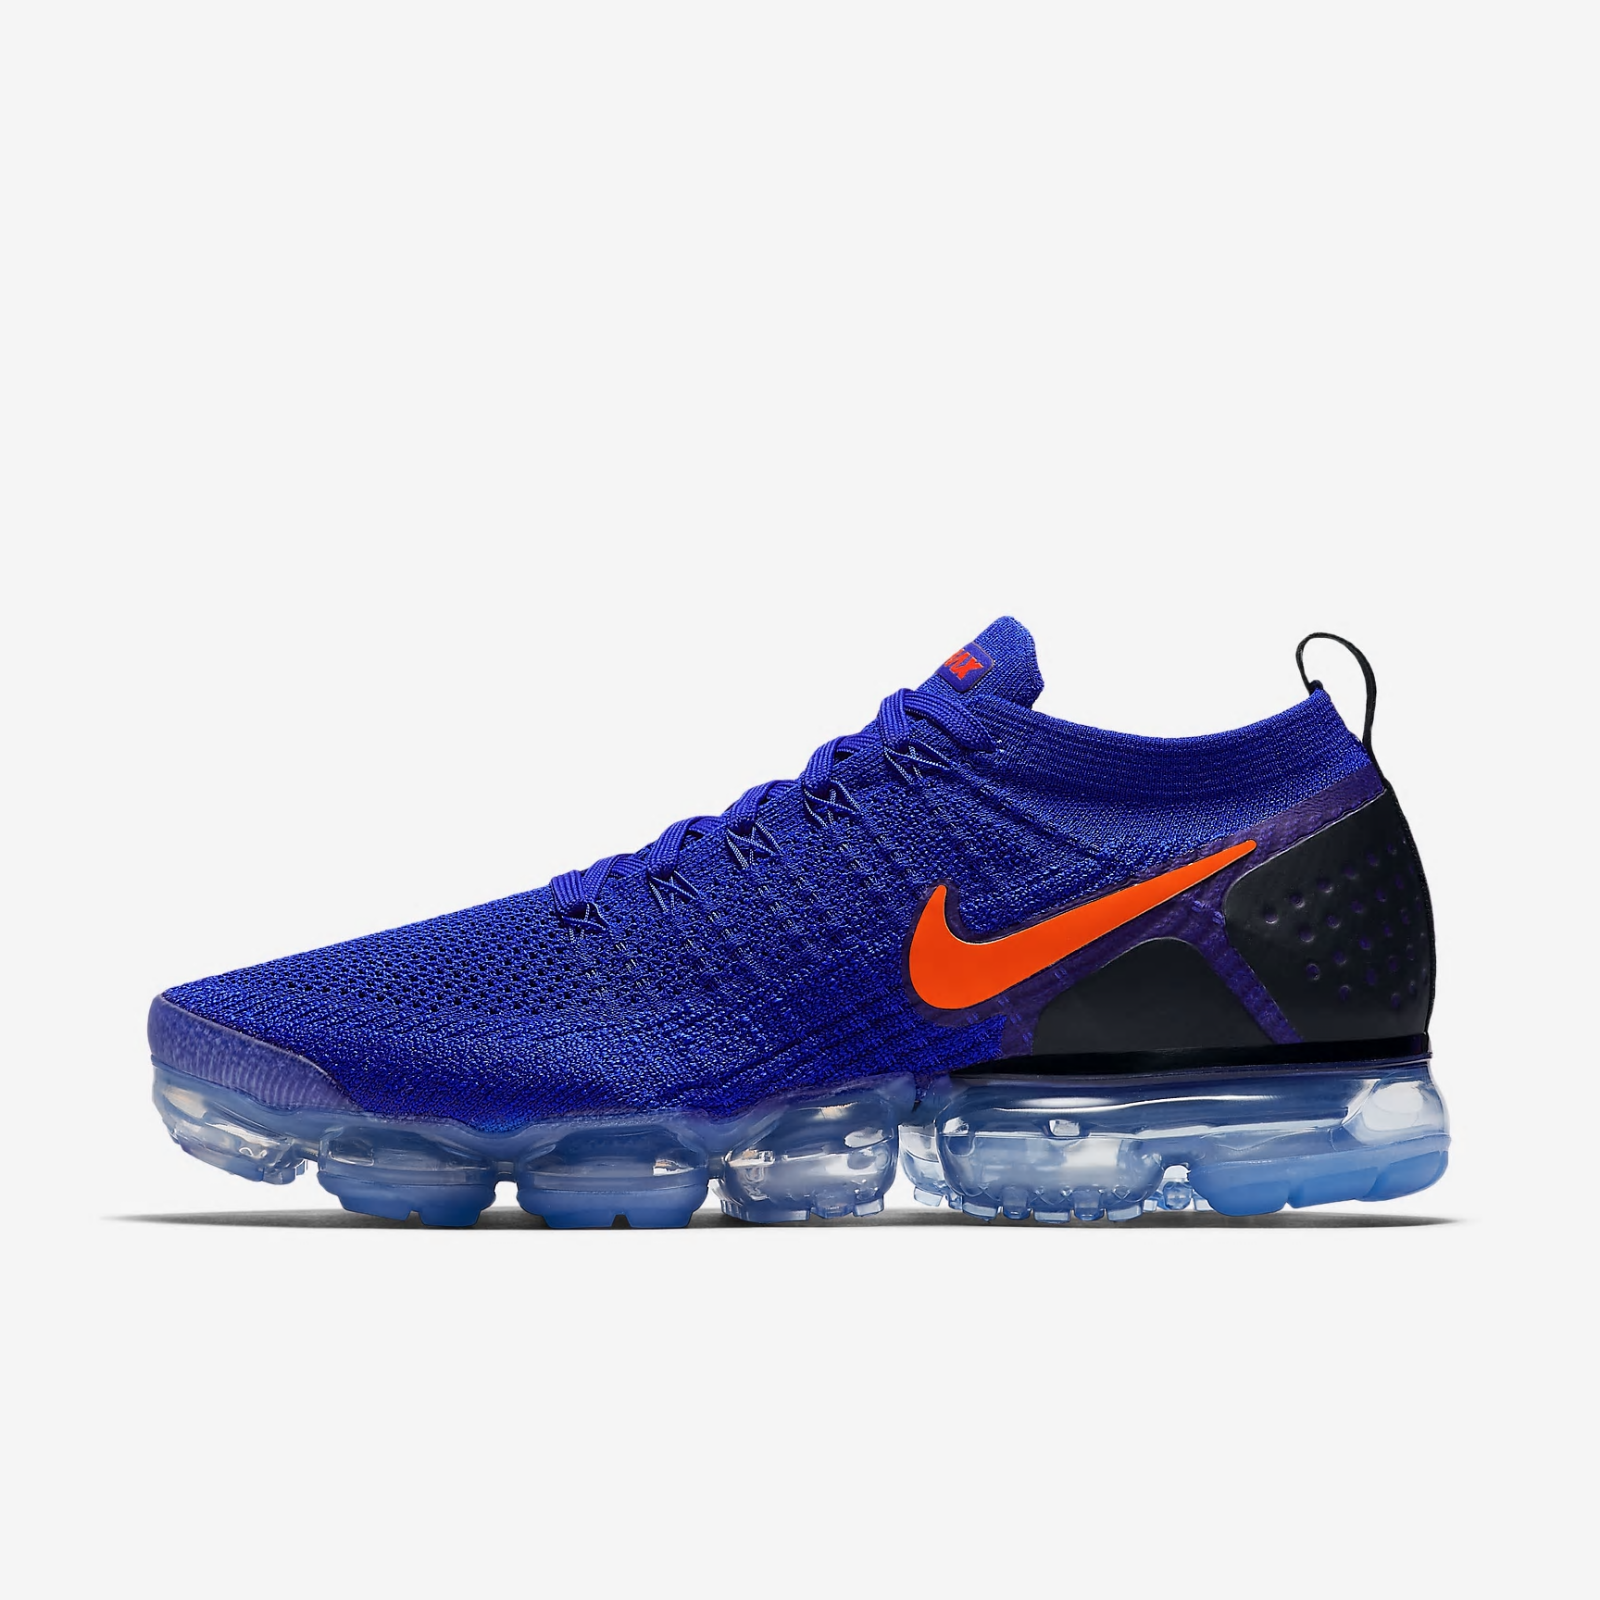 info for c8115 dc47e Men's Authentic Nike Air Vapor Max Flyknit 2 and 50 similar items